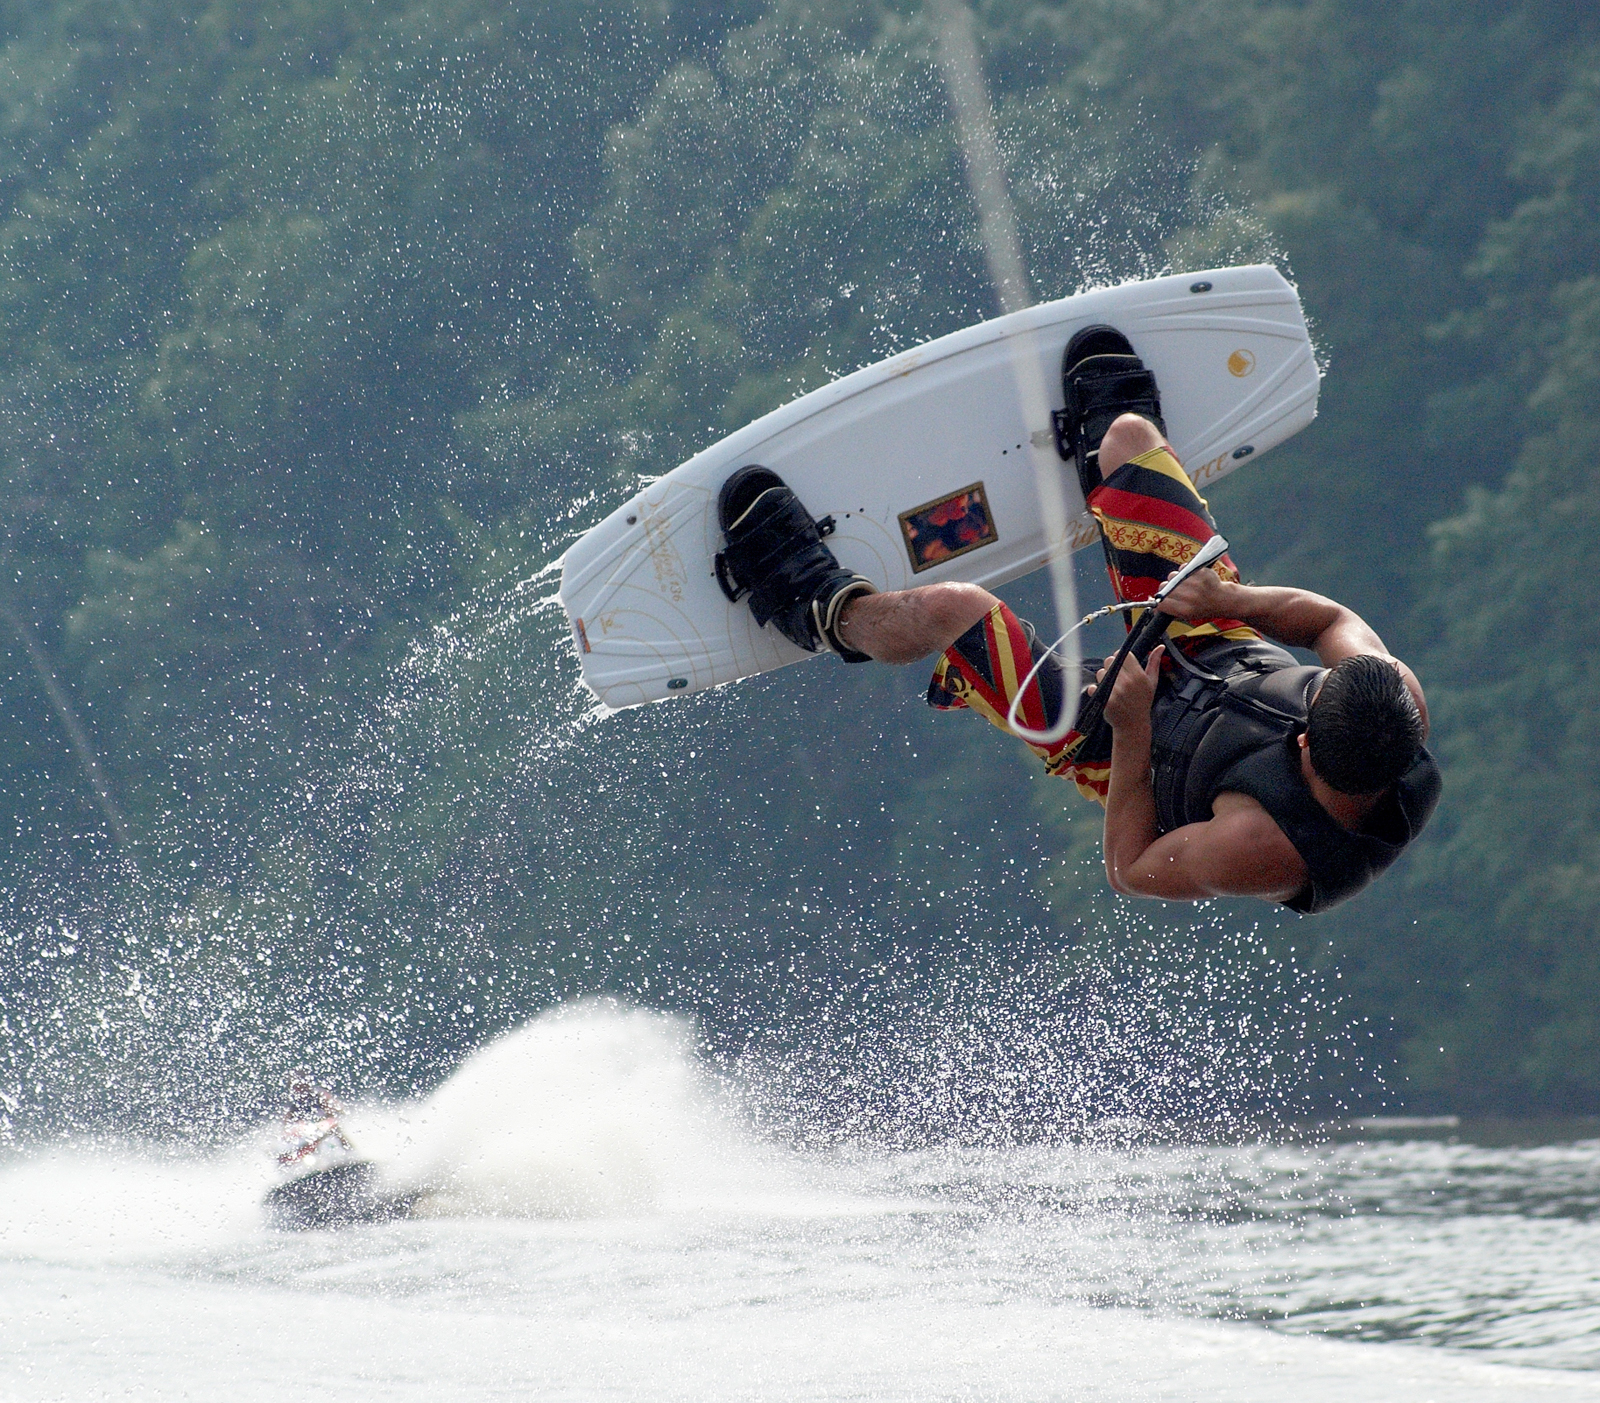 Jimmy_wakeboarding_0112.jpg